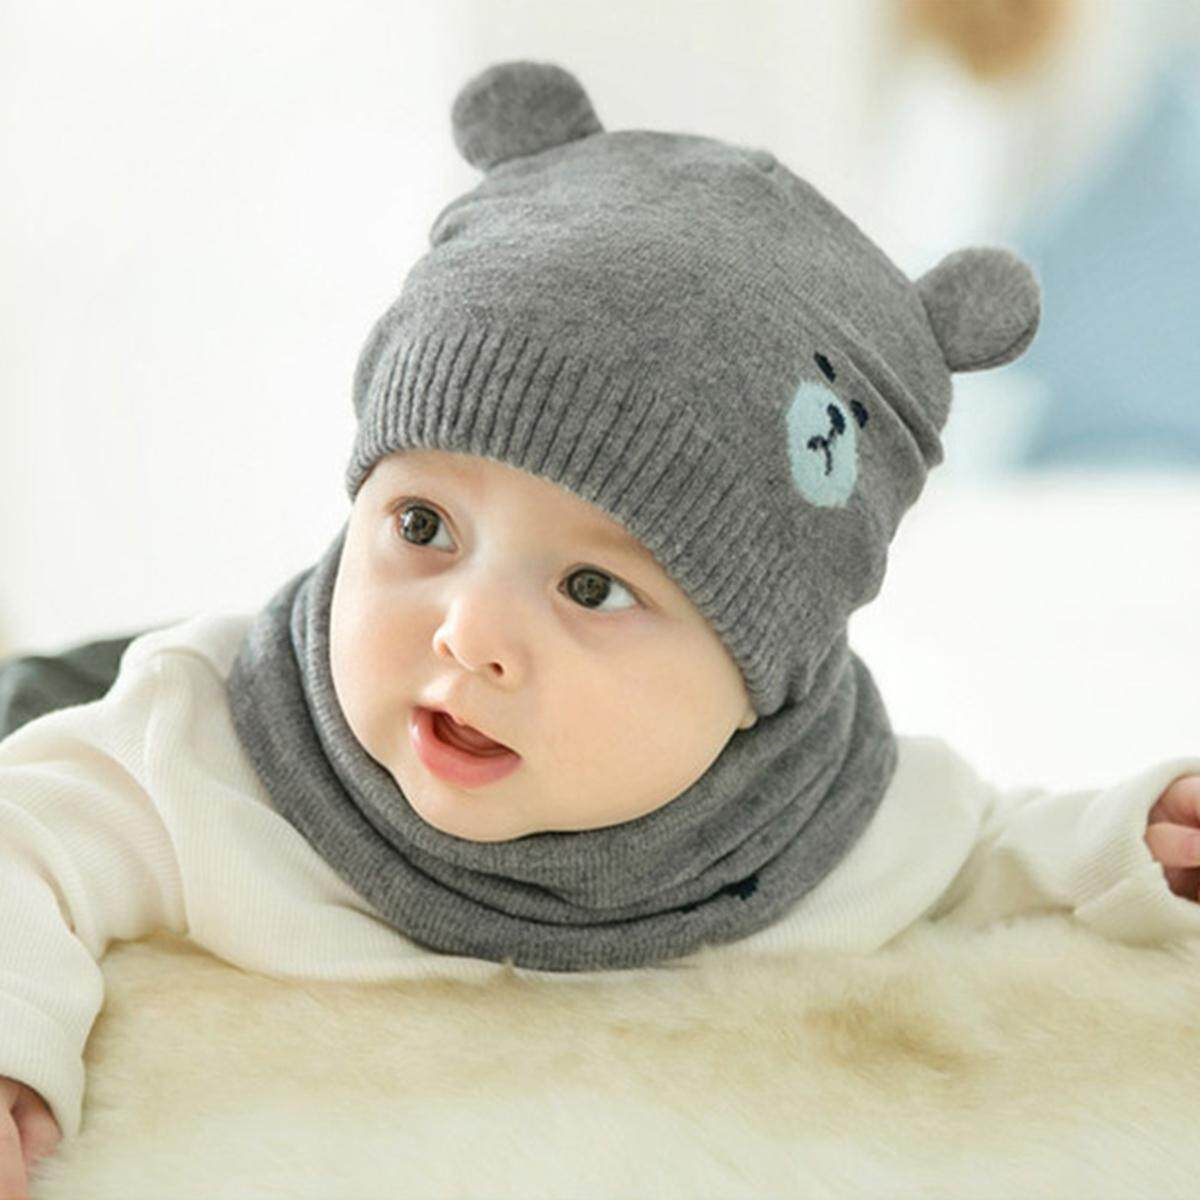 629071a06 2pcs/set Fashion Newborn Toddler Kids Hats Knitted Warm Bear Ear Beanie Cap  Bonnet Baby Winter Caps + Neckerchief Suits